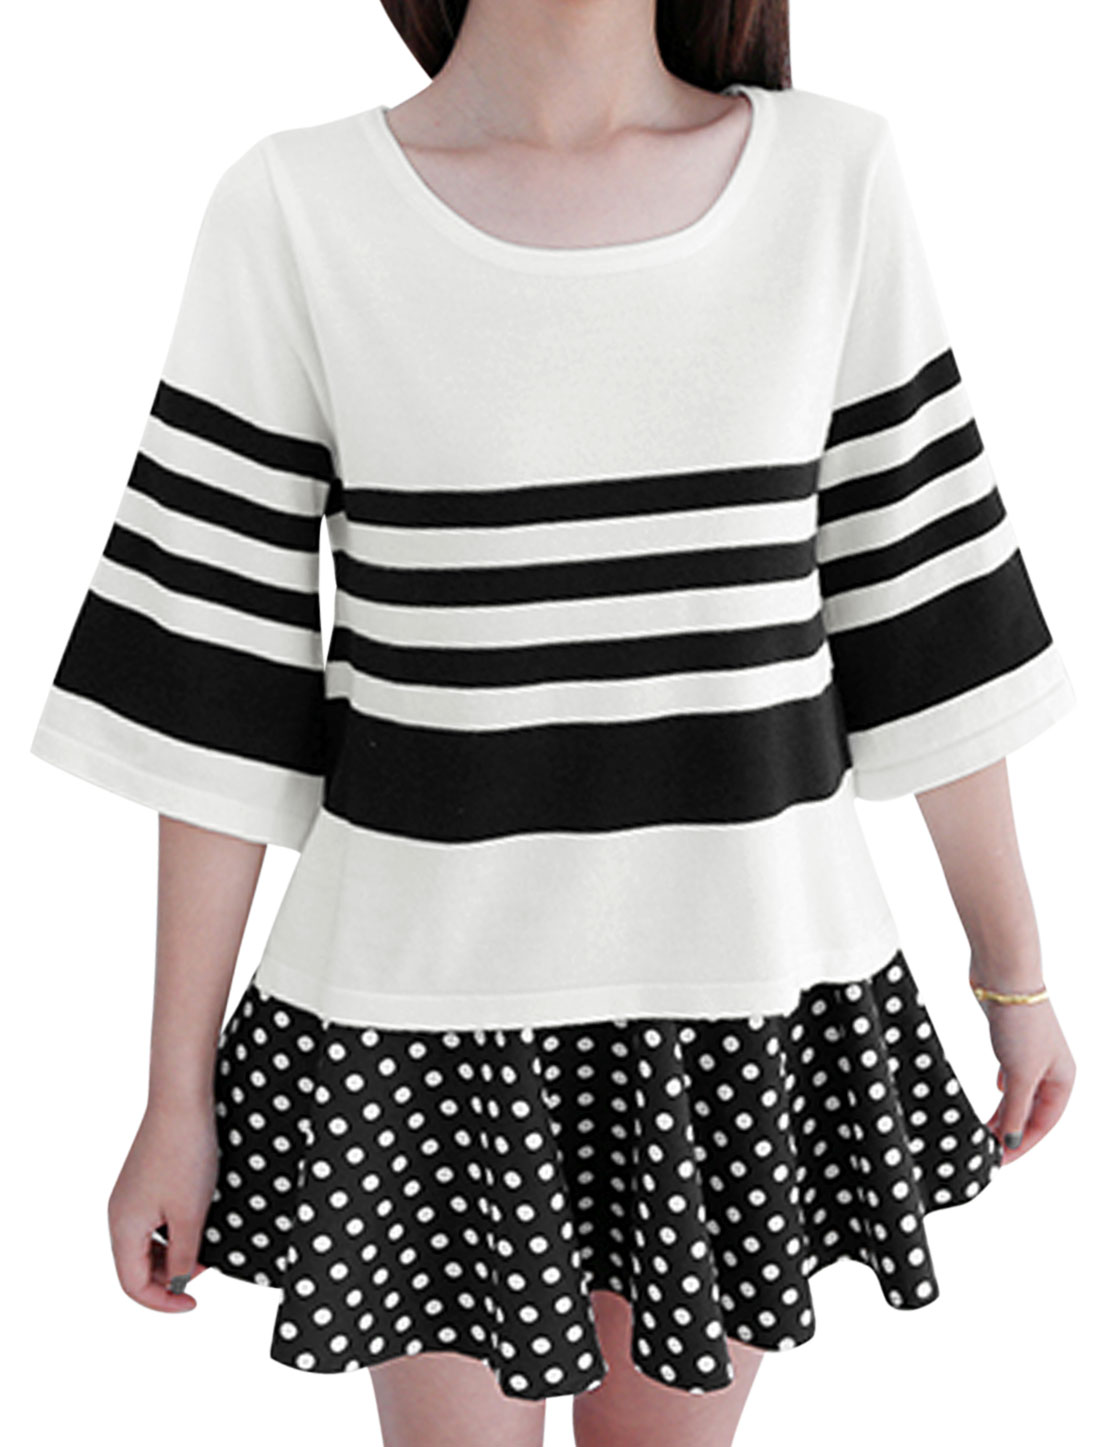 Lady Round Neck Streps Pattern Low Hight Hew Casual Knit Shirt White XS